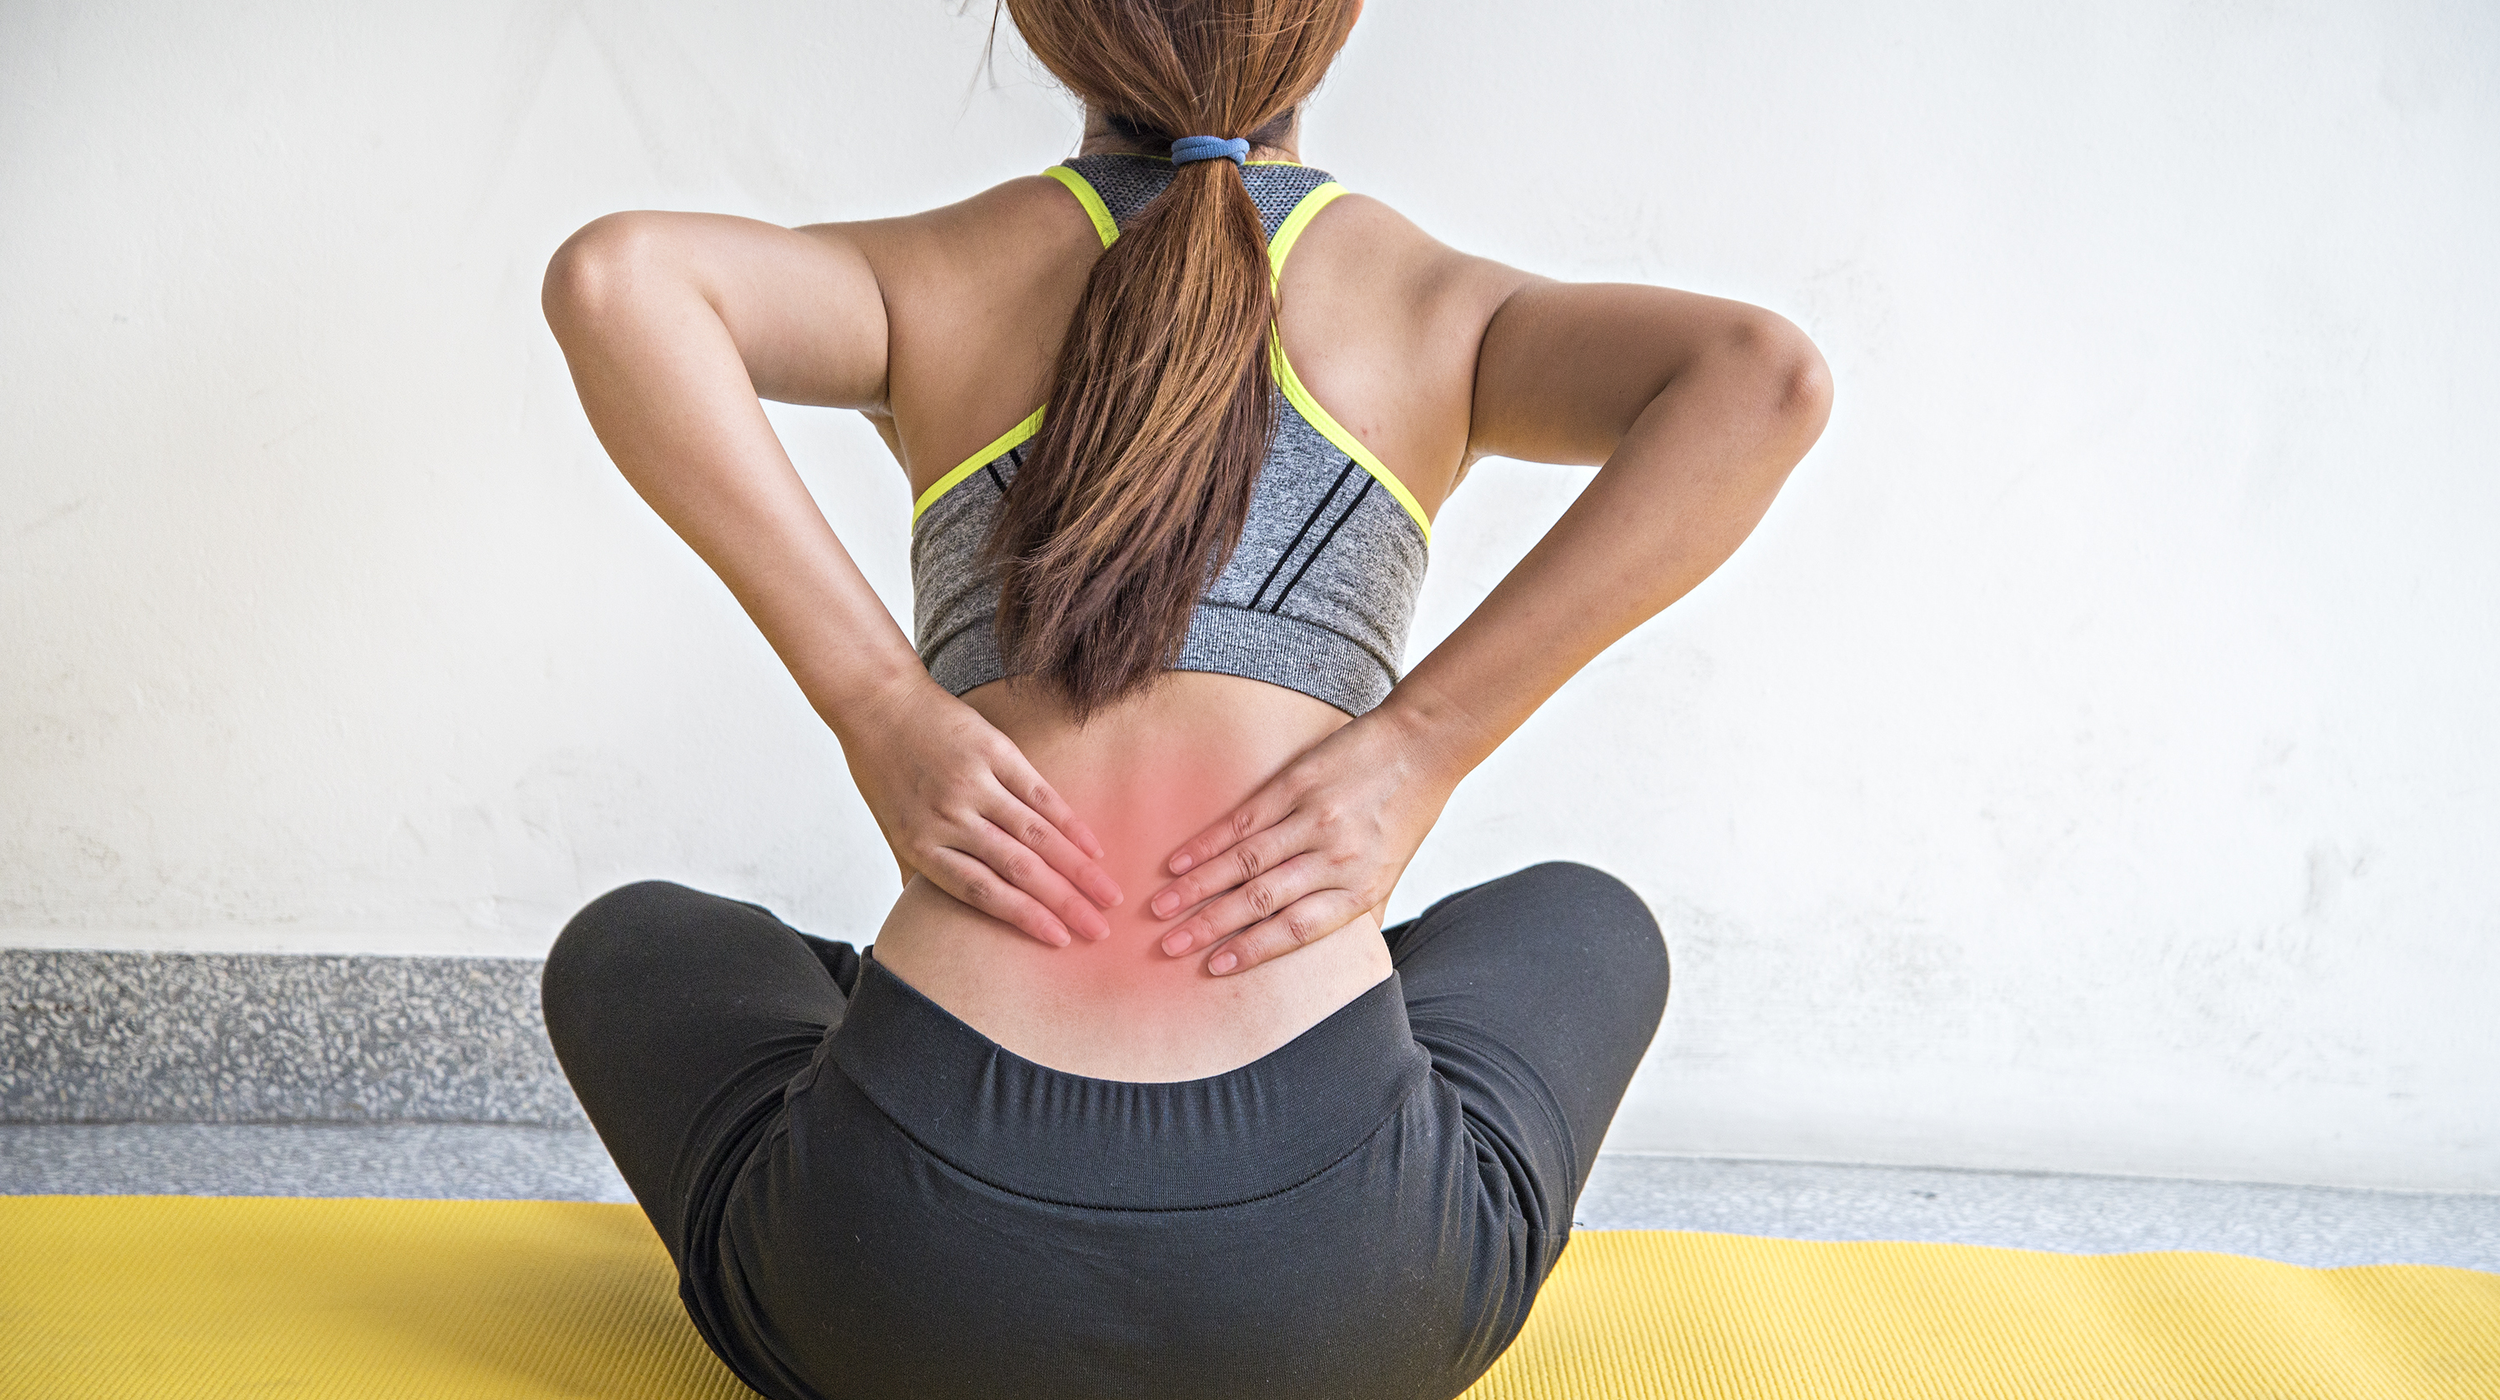 Is Back Pain Common After Working Out?